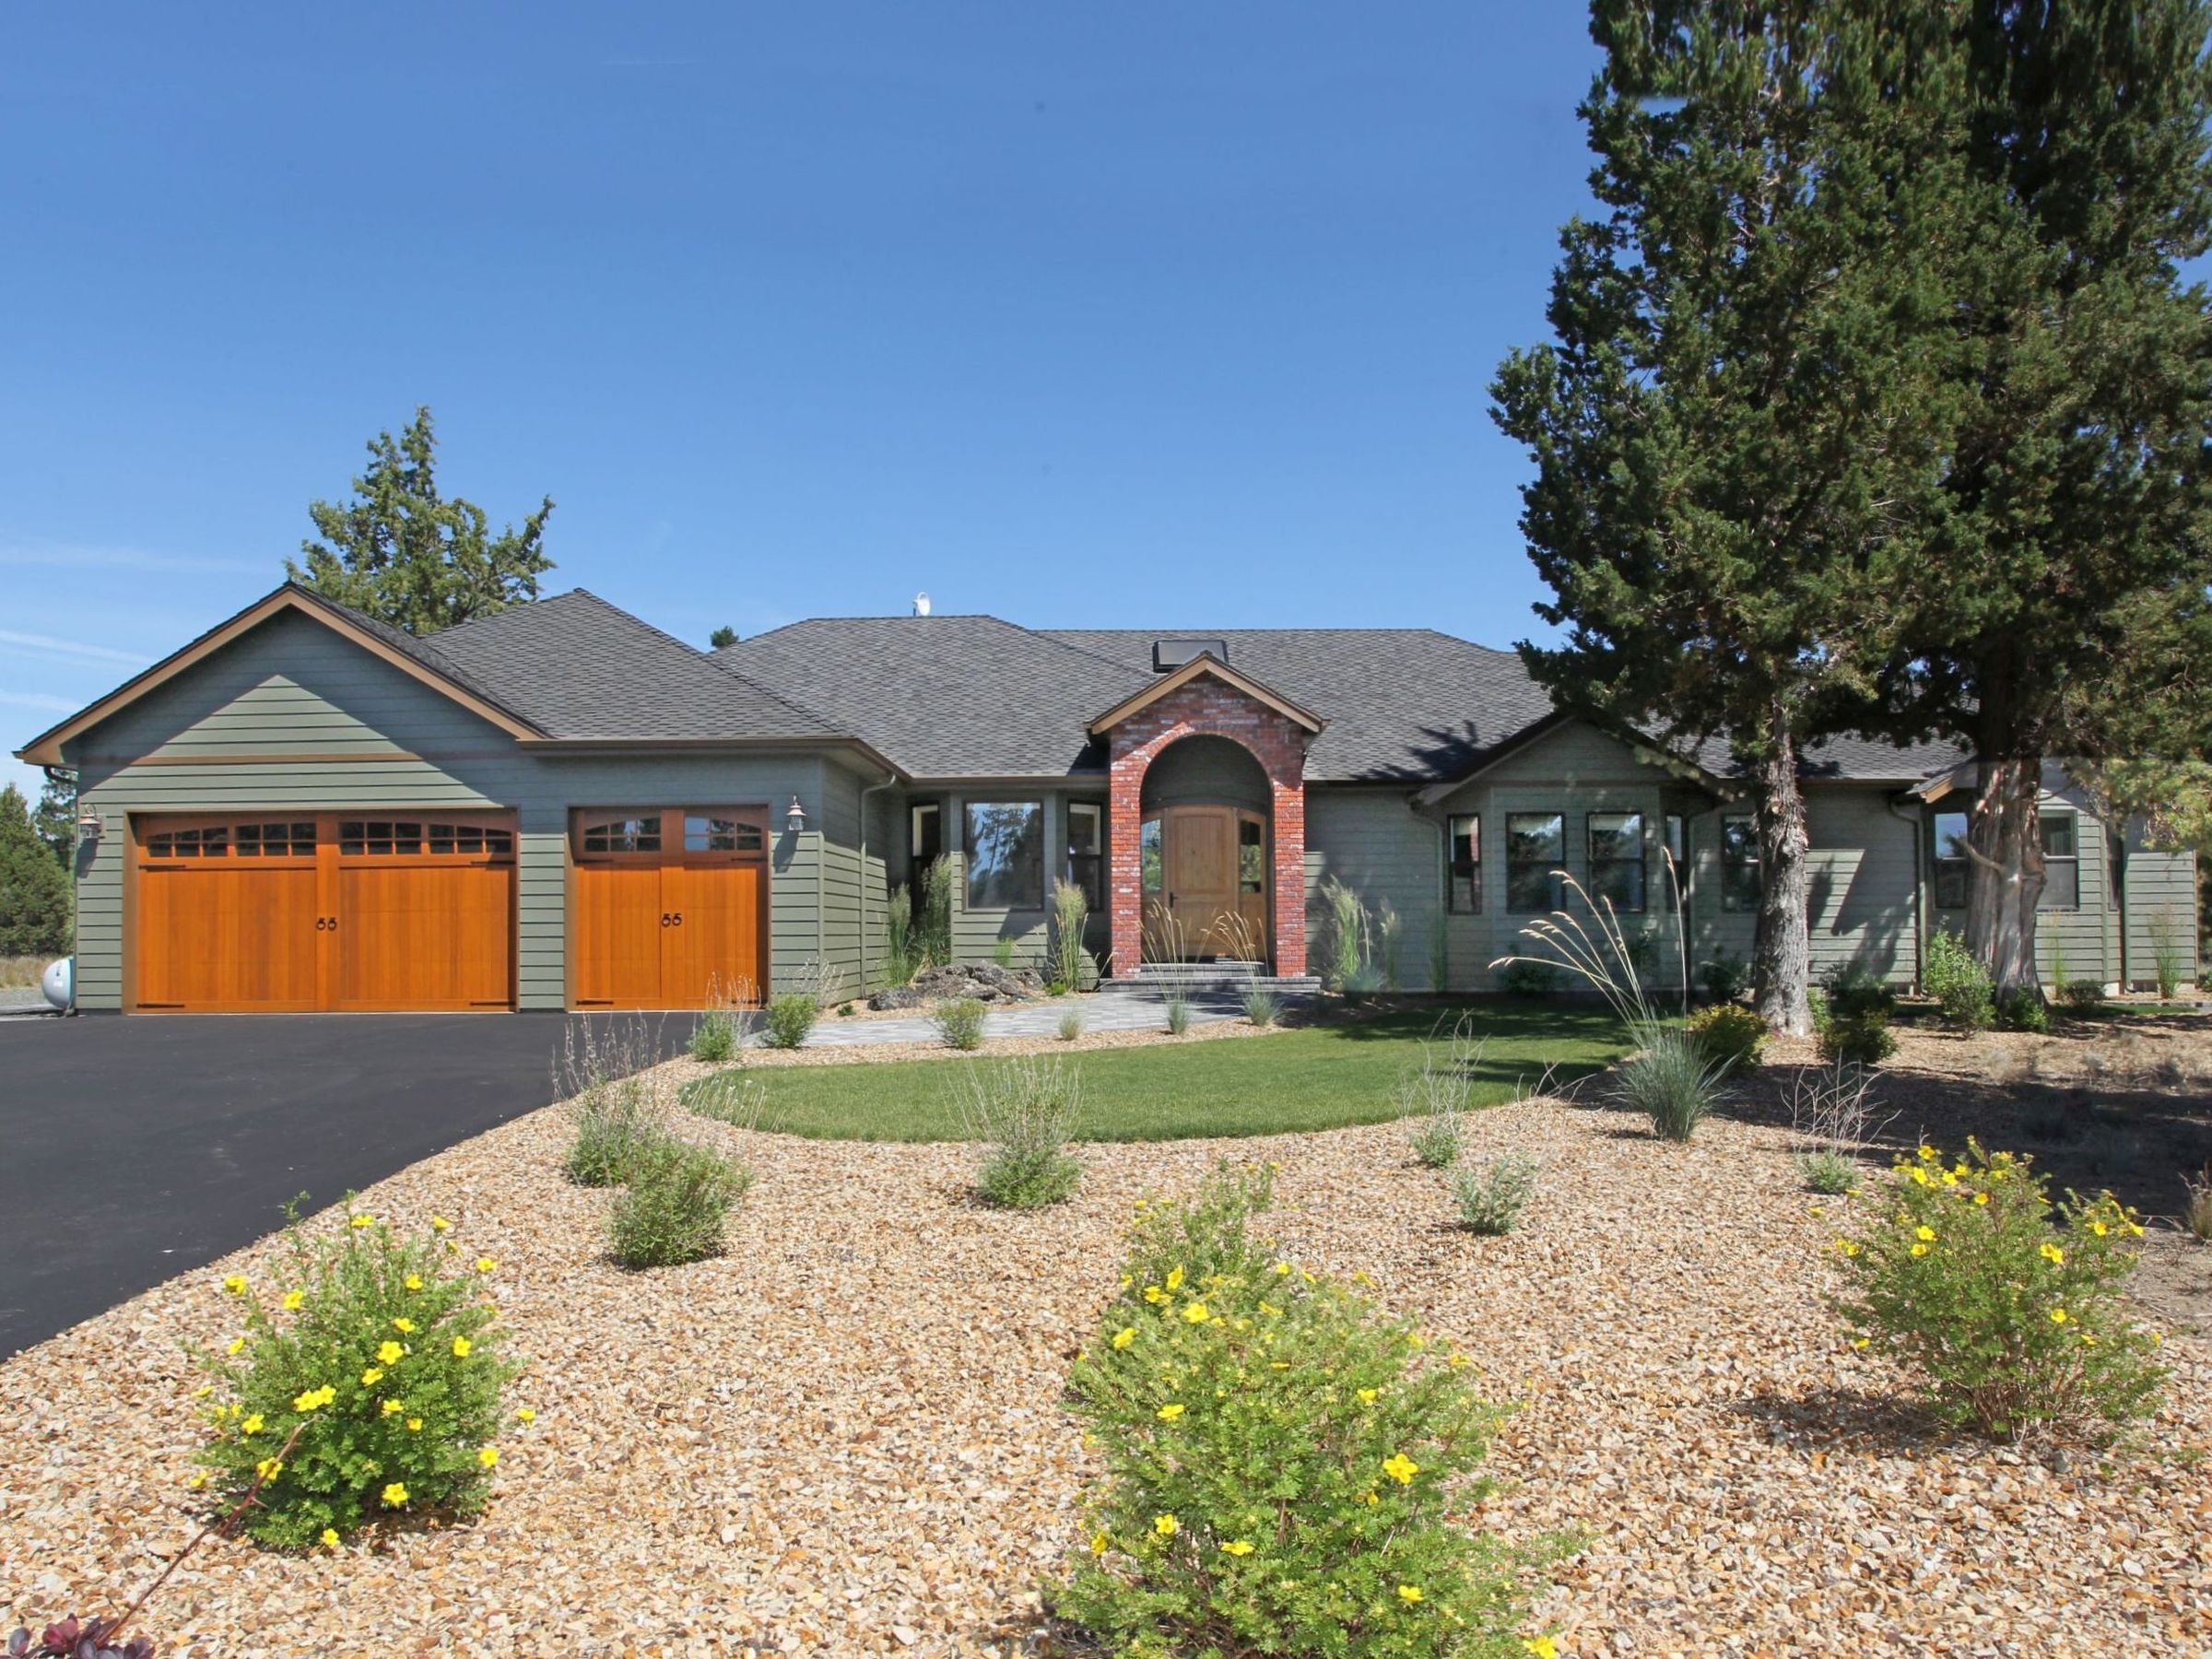 Single Family Home for Sale at 21950 Butte Ranch 21950 Butte Ranch Rd Bend, Oregon 97702 United States